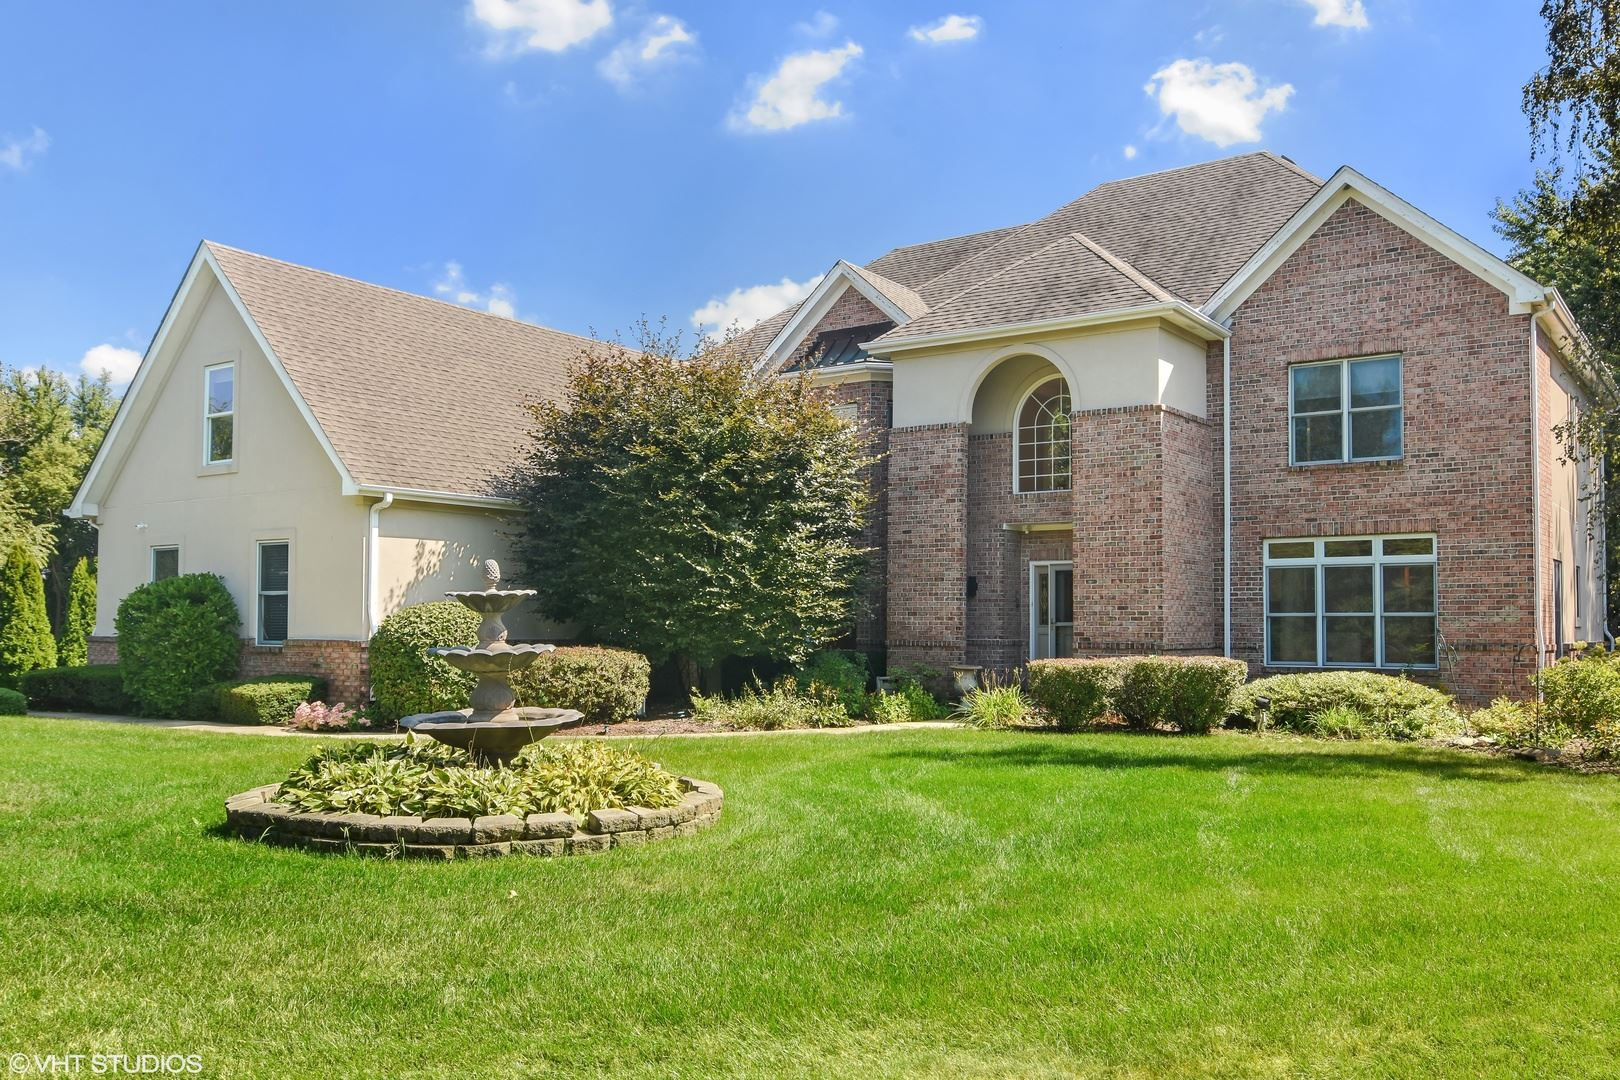 10 Enclave Way, Hawthorn Woods, IL 60047 - #: 10710130